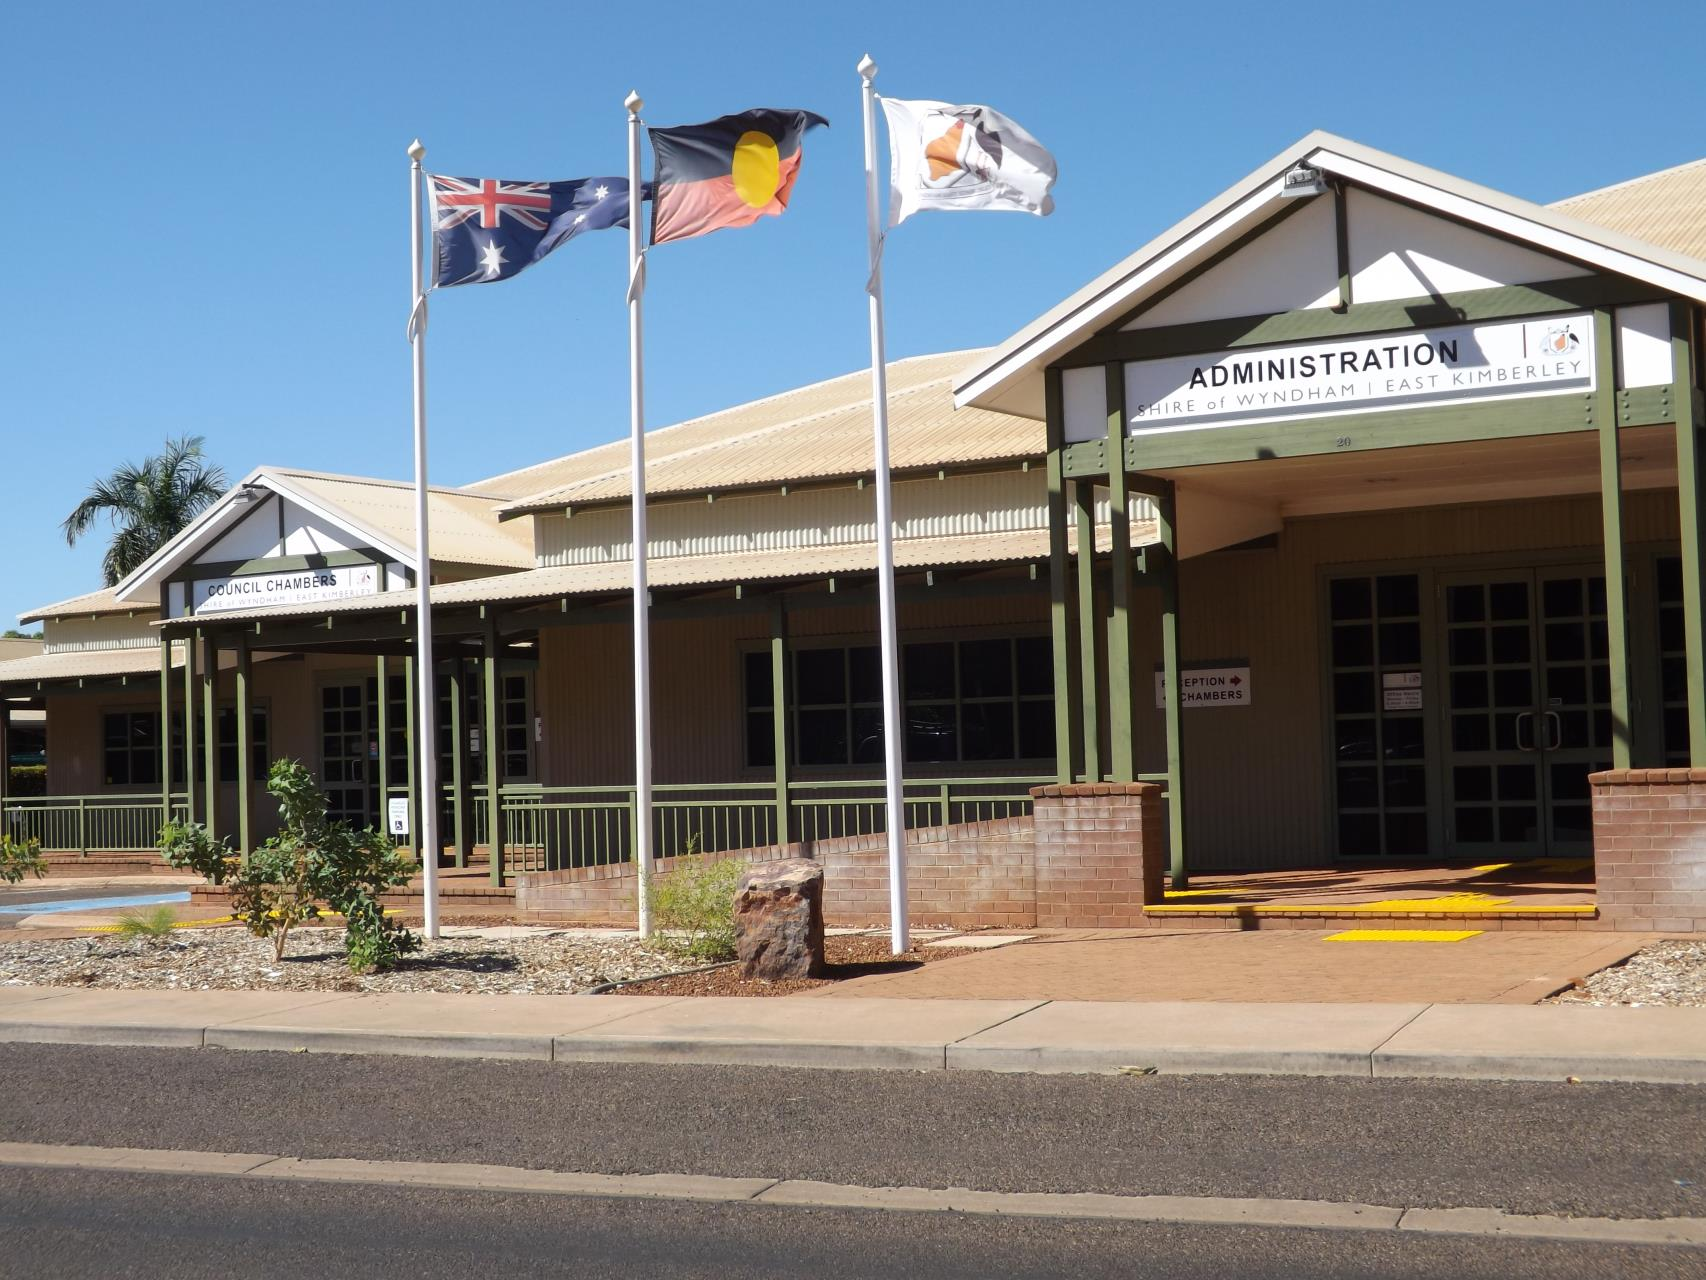 Shire of Wyndham East Kimberley works closely with government agencies